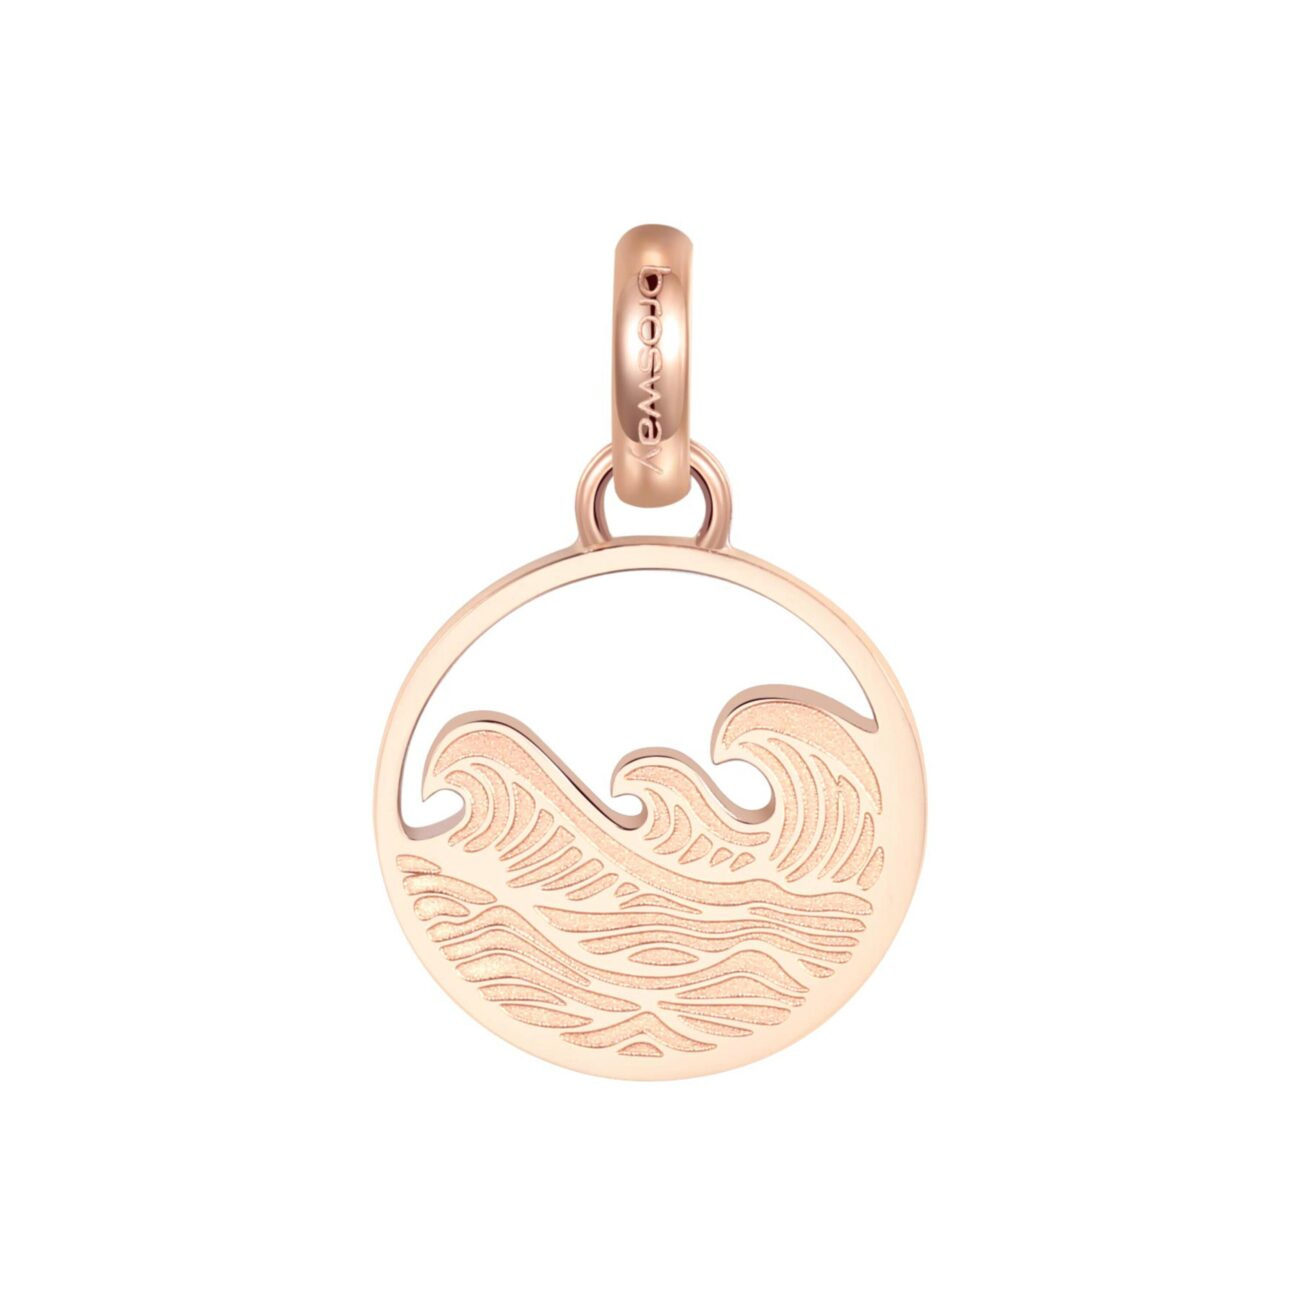 ENGRAVING: Sea Lover (back)316L stainless steel beads, rose gold finishes with sea and engraving.